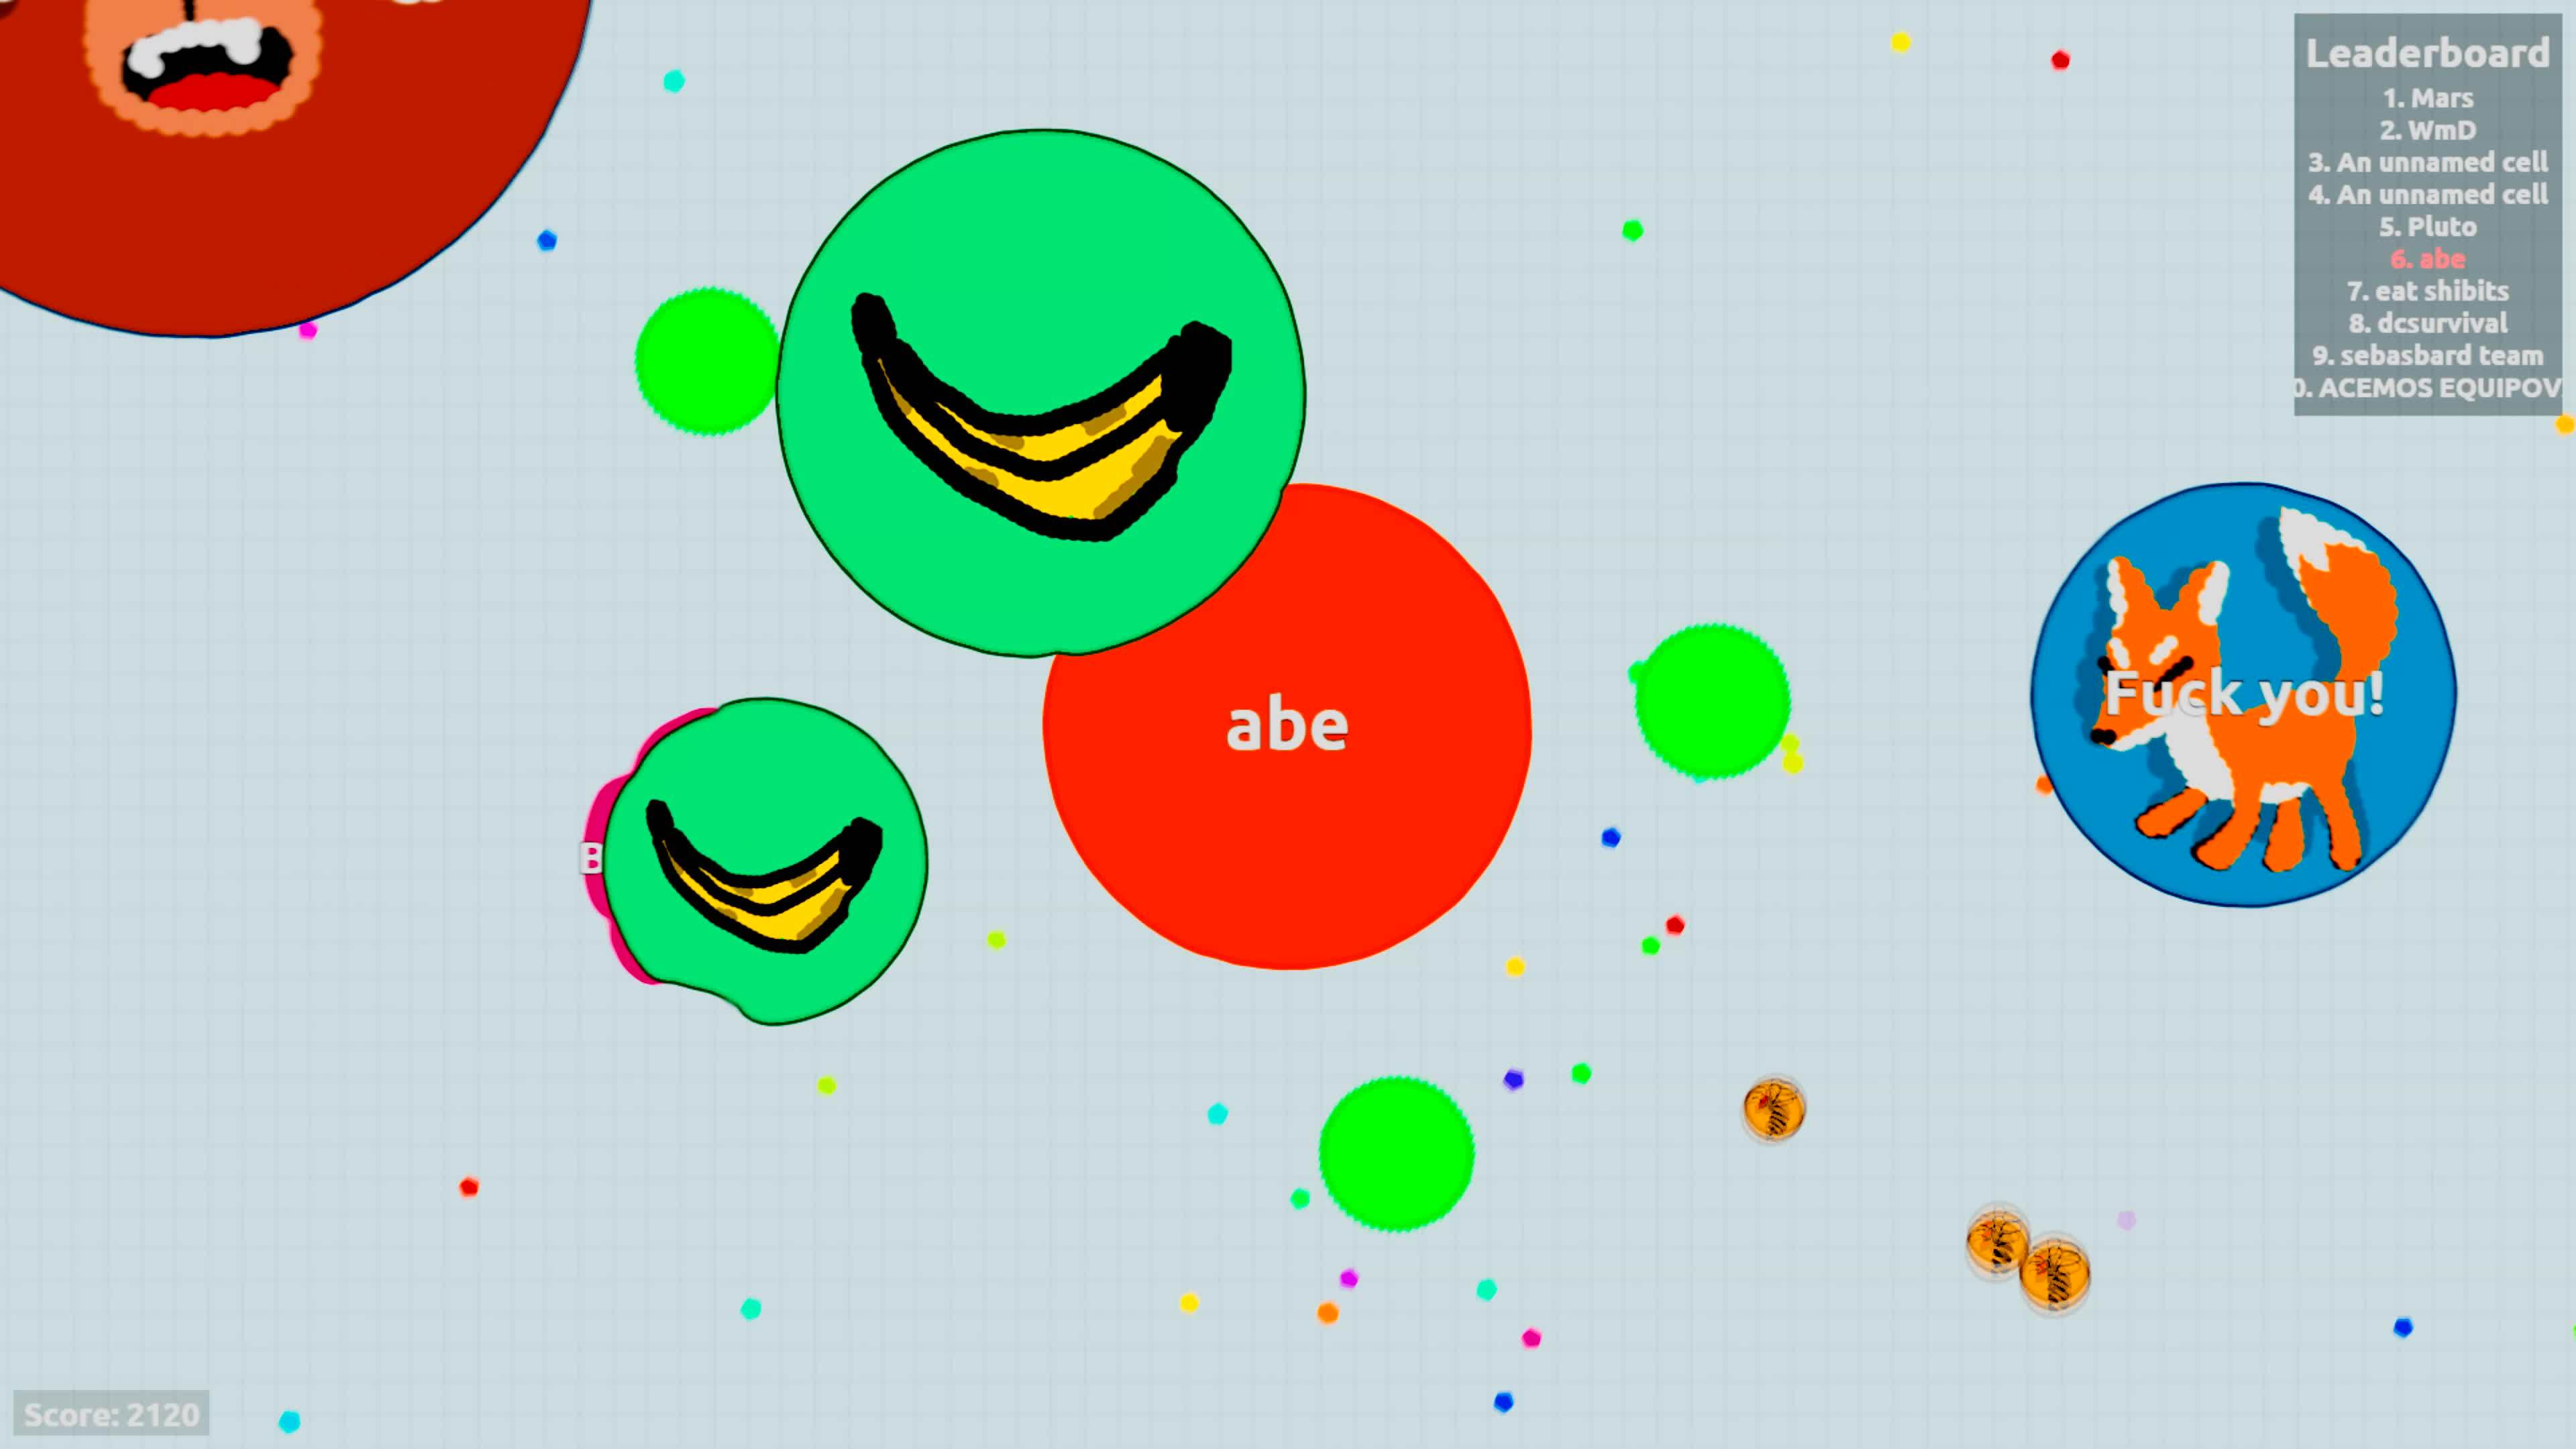 agario, Someone is mad at me GIFs